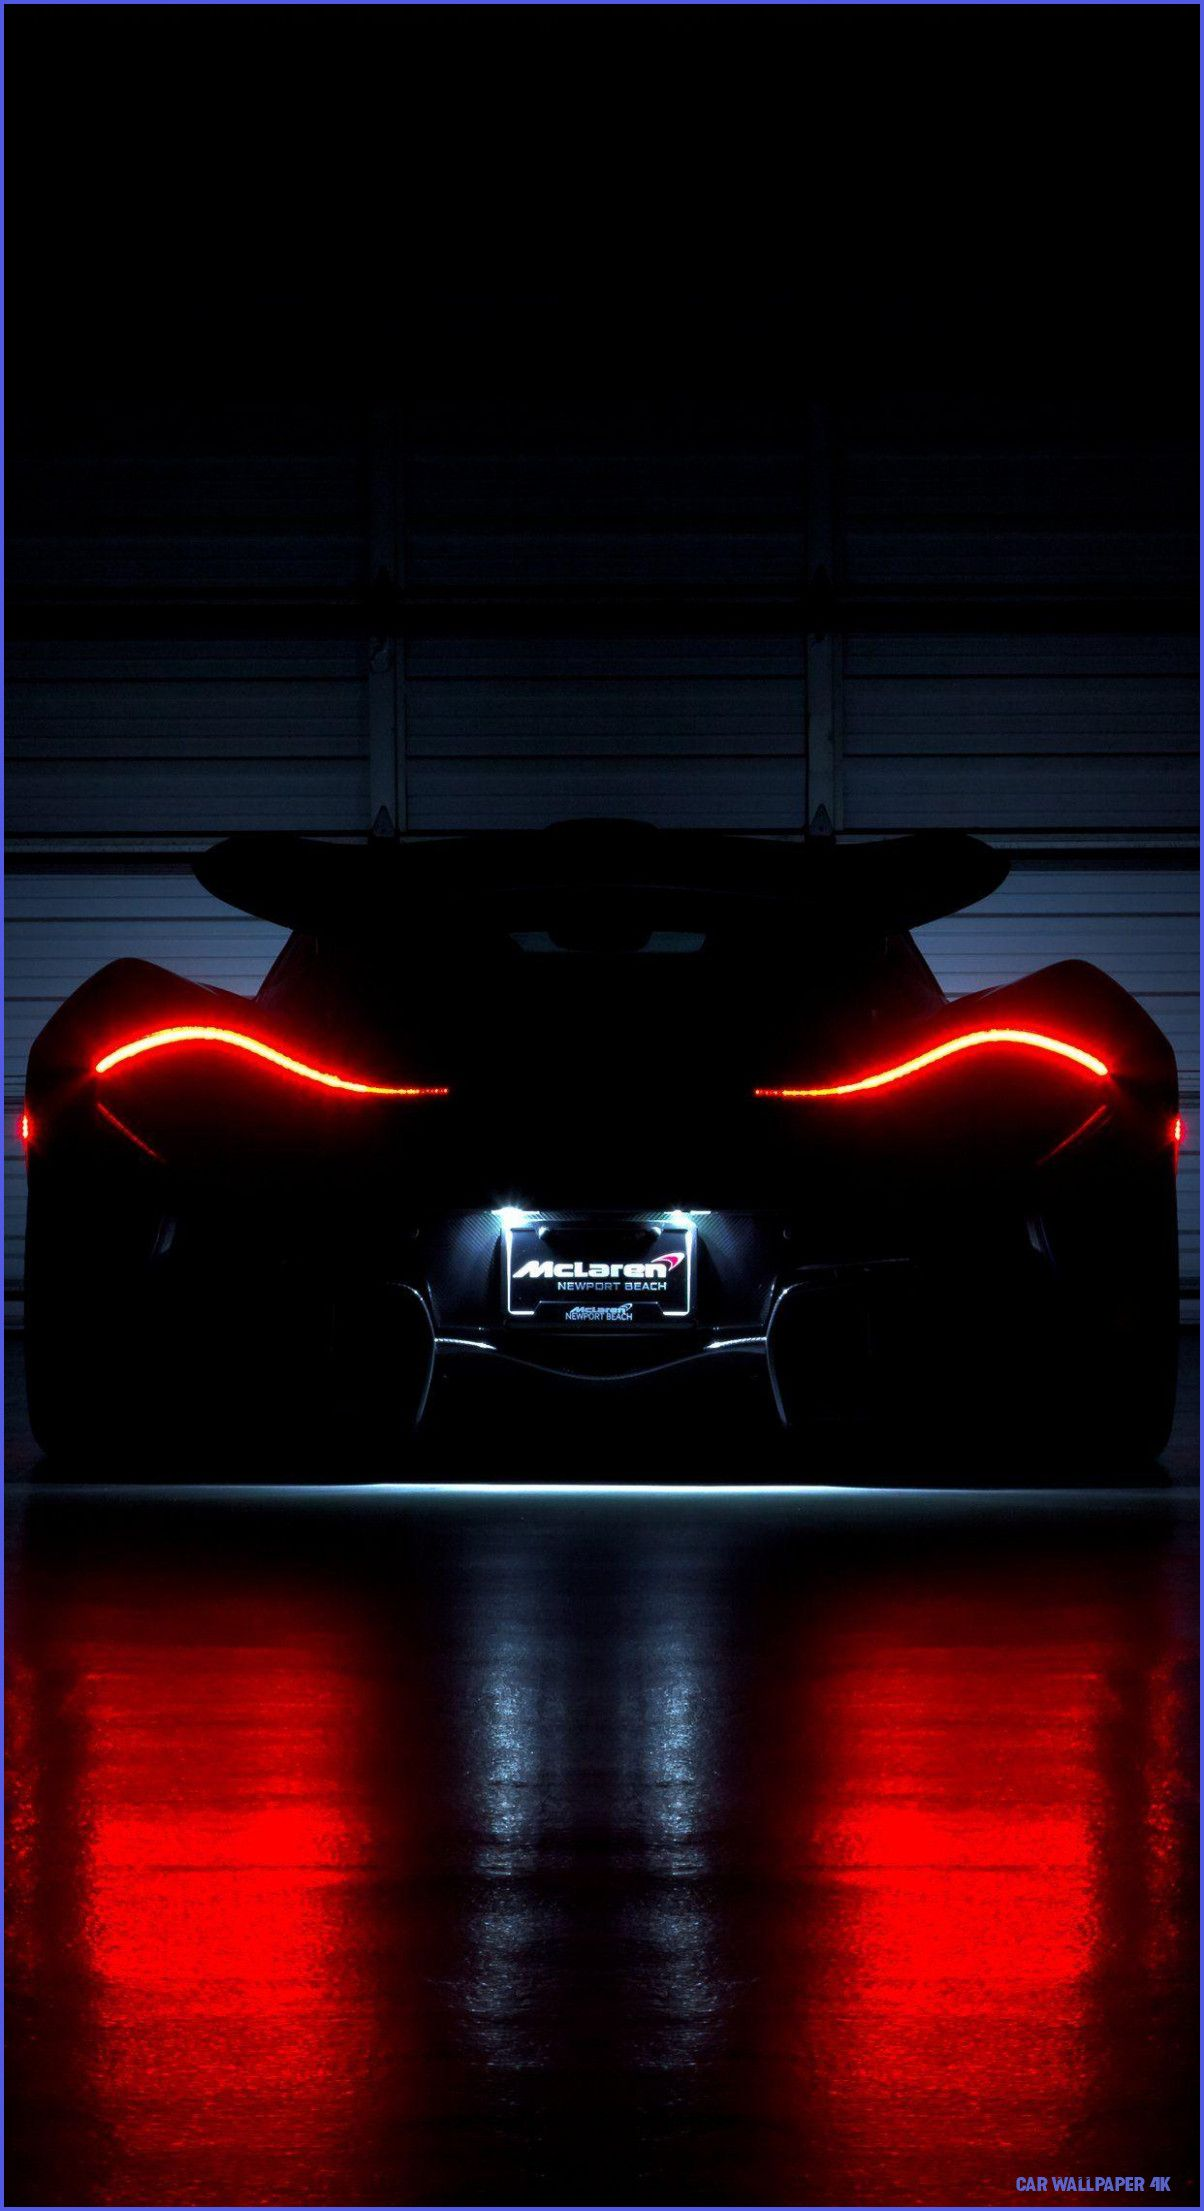 9 Things That Happen When You Are In Car Wallpaper 9k Car Wallpaper 9k Https Wallpaperartys Com 9 Things T Car Wallpapers Sports Car Wallpaper Mclaren Cars